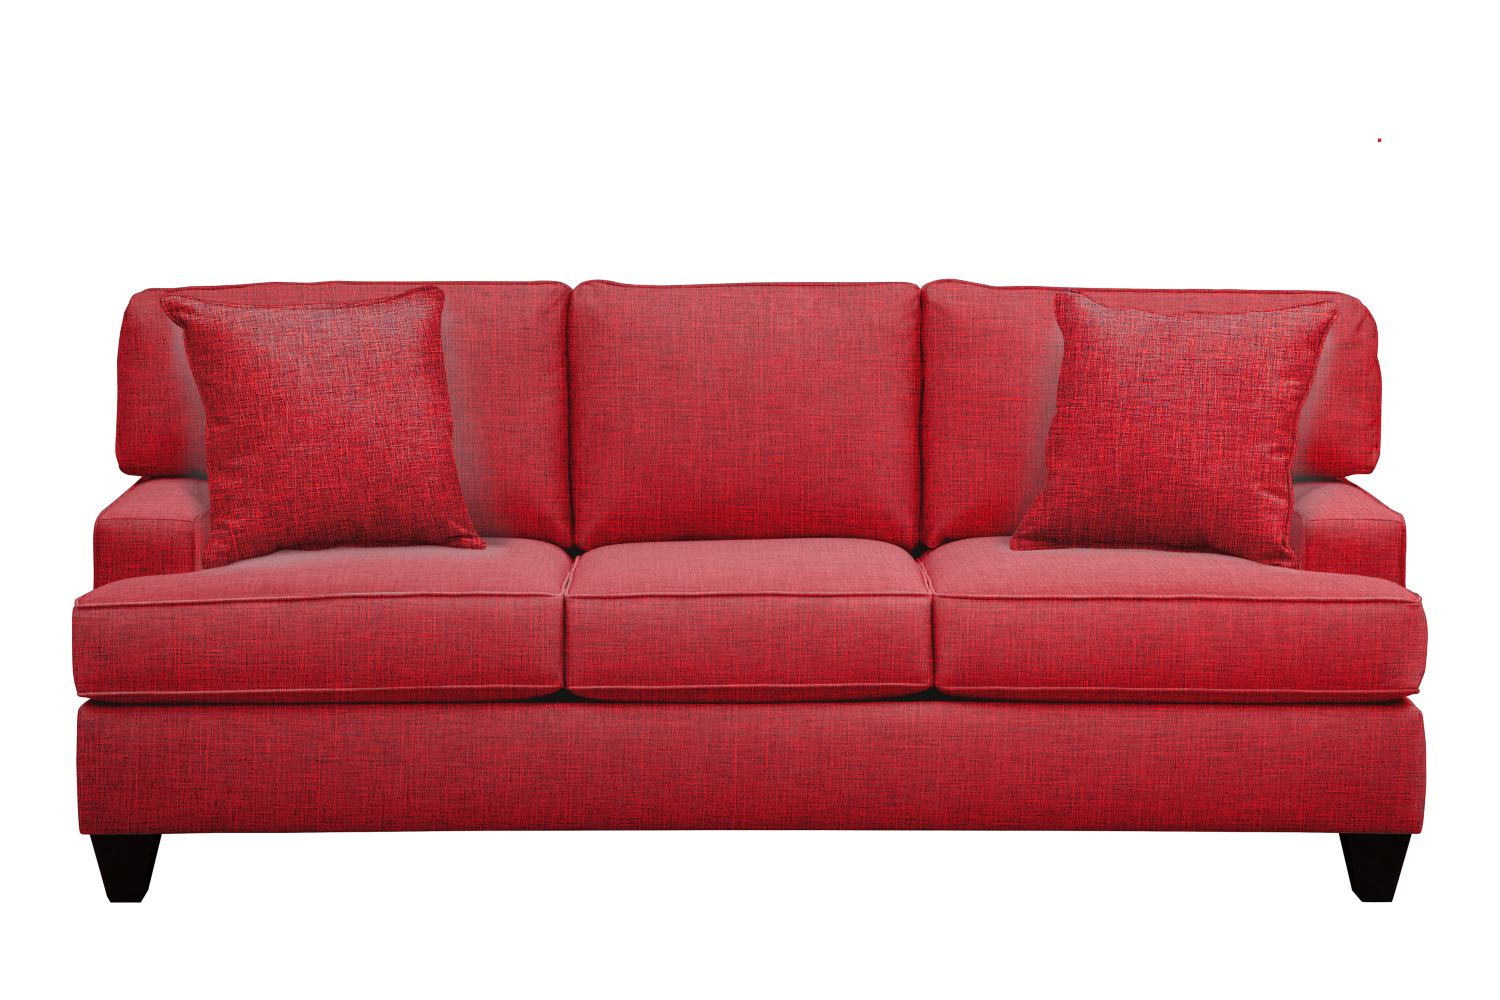 "Living Room Furniture - Conner Track Arm Sofa 87"" Milford II Red w/ Milford II Red  Pillow"